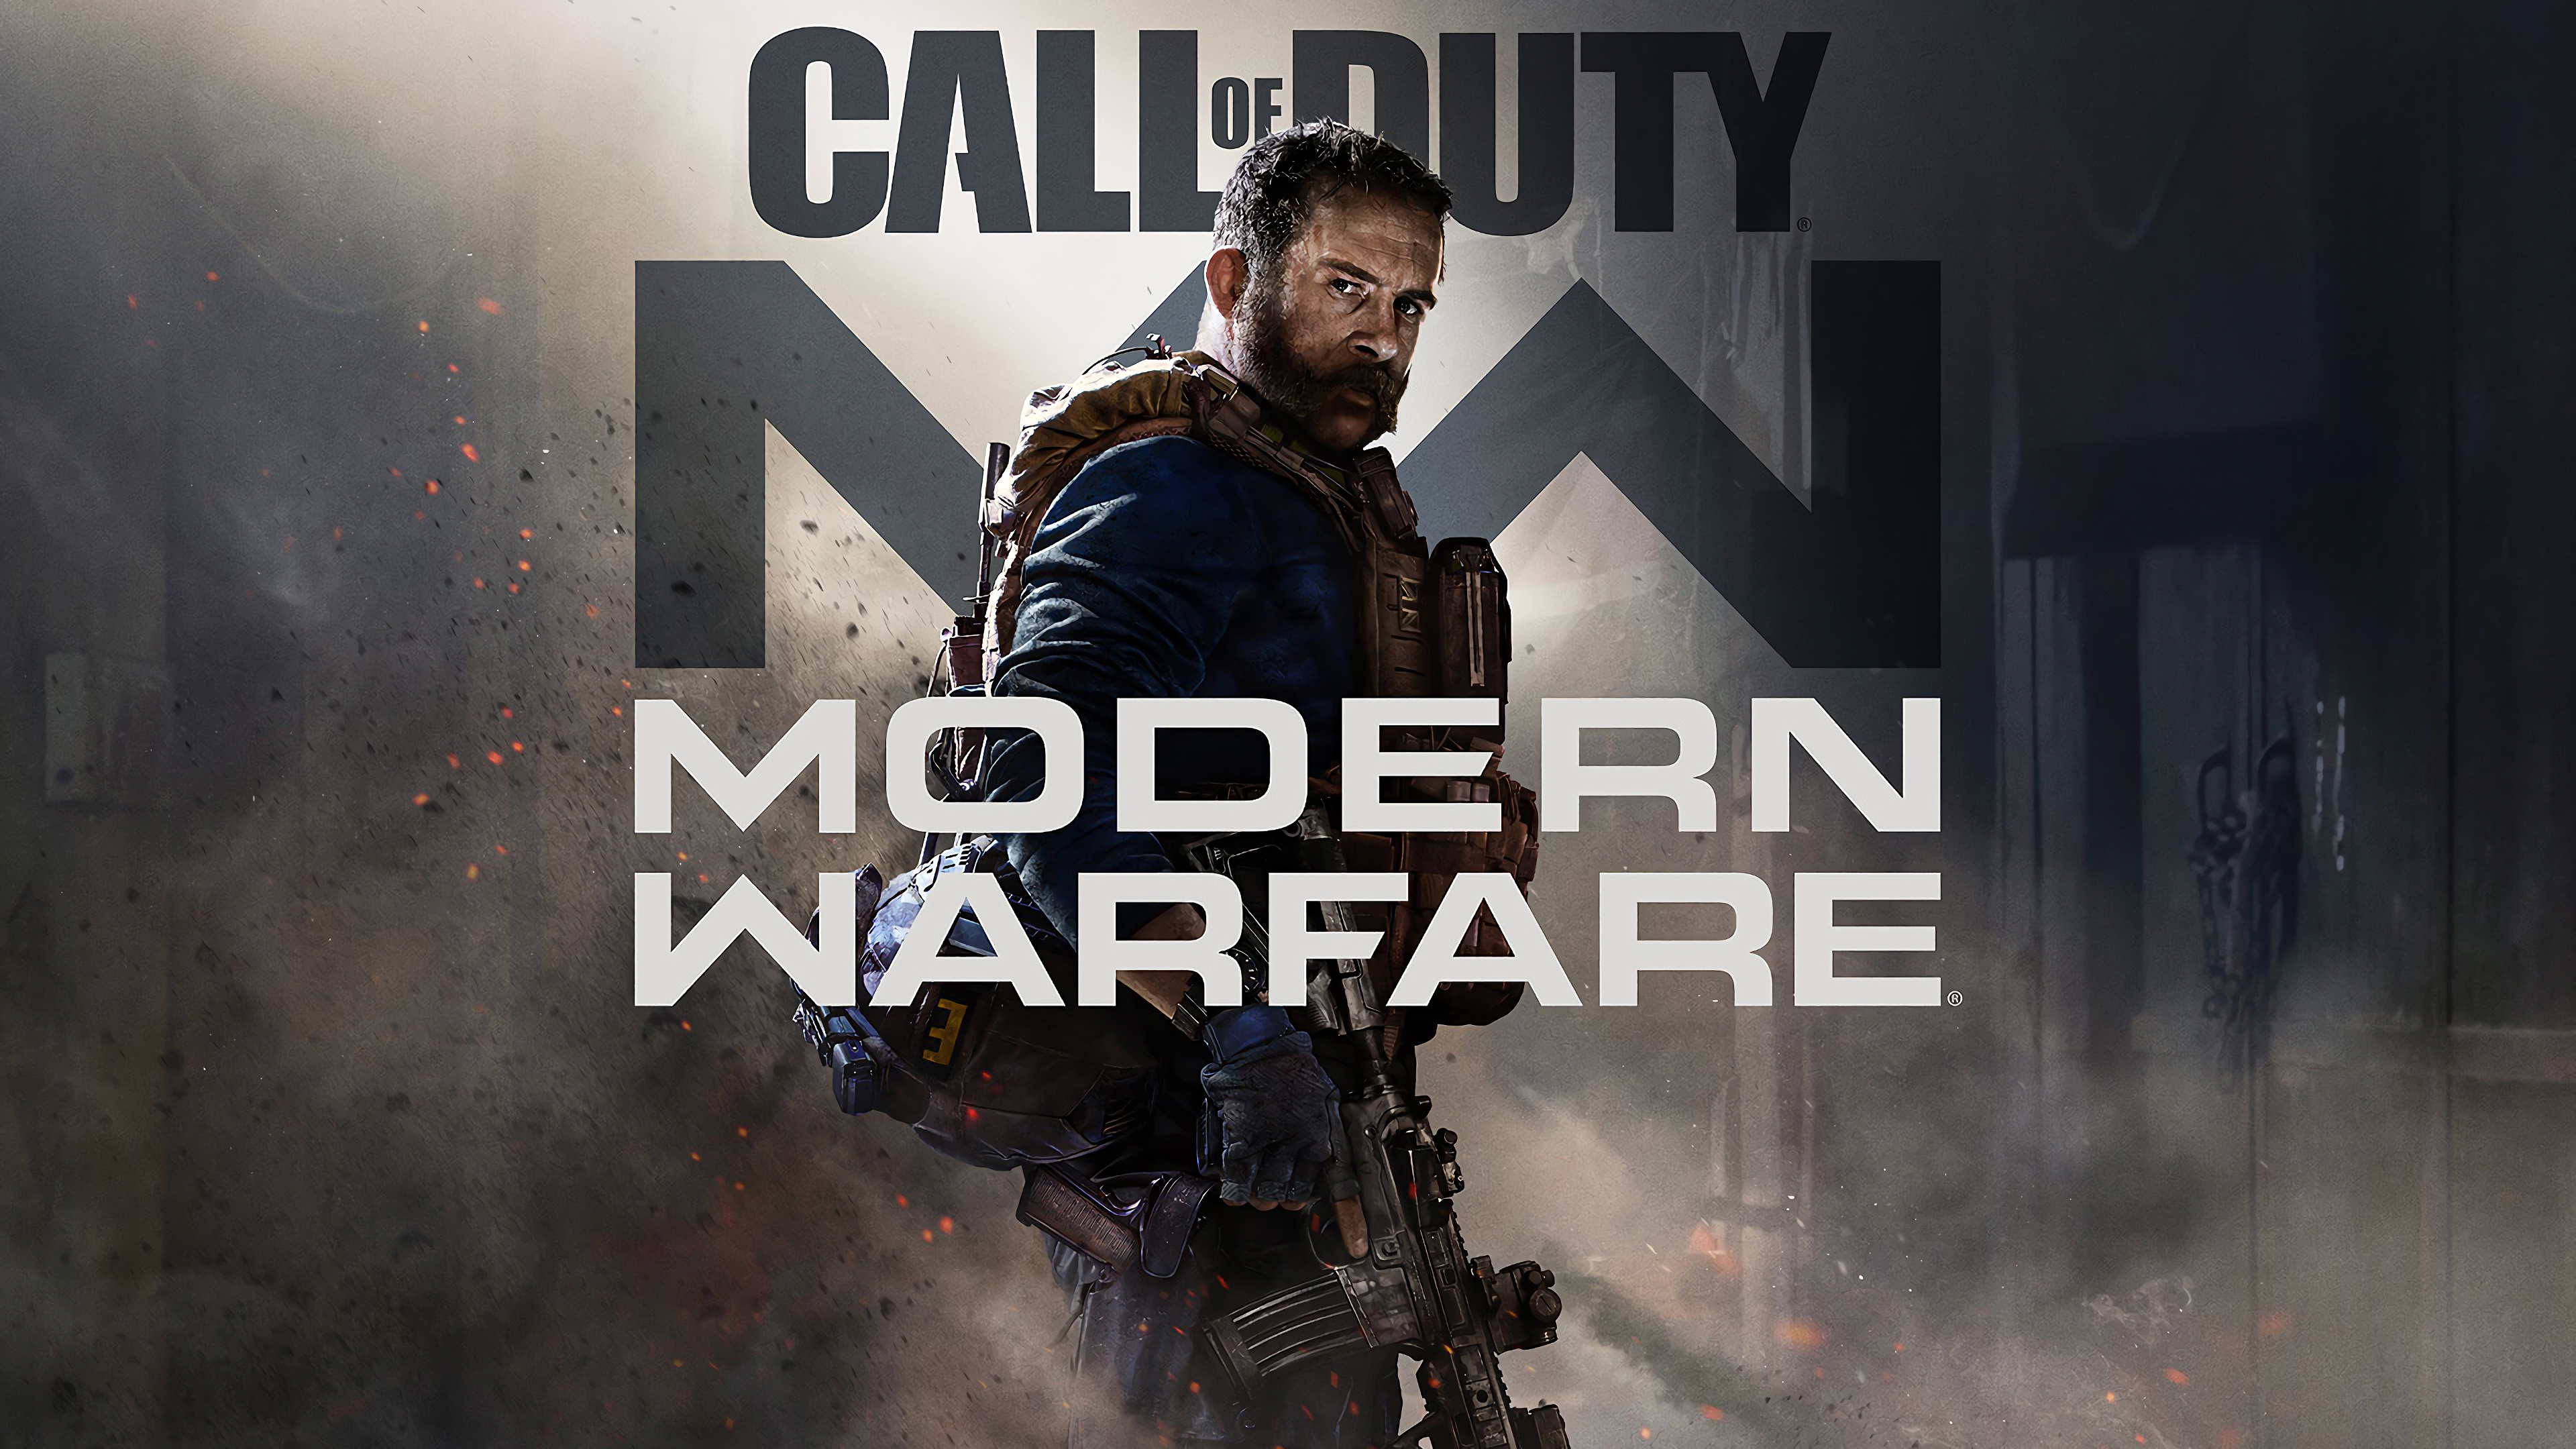 Call Duty Modern Warfare 2019 Fondo De Pantalla 4k Ultra Hd